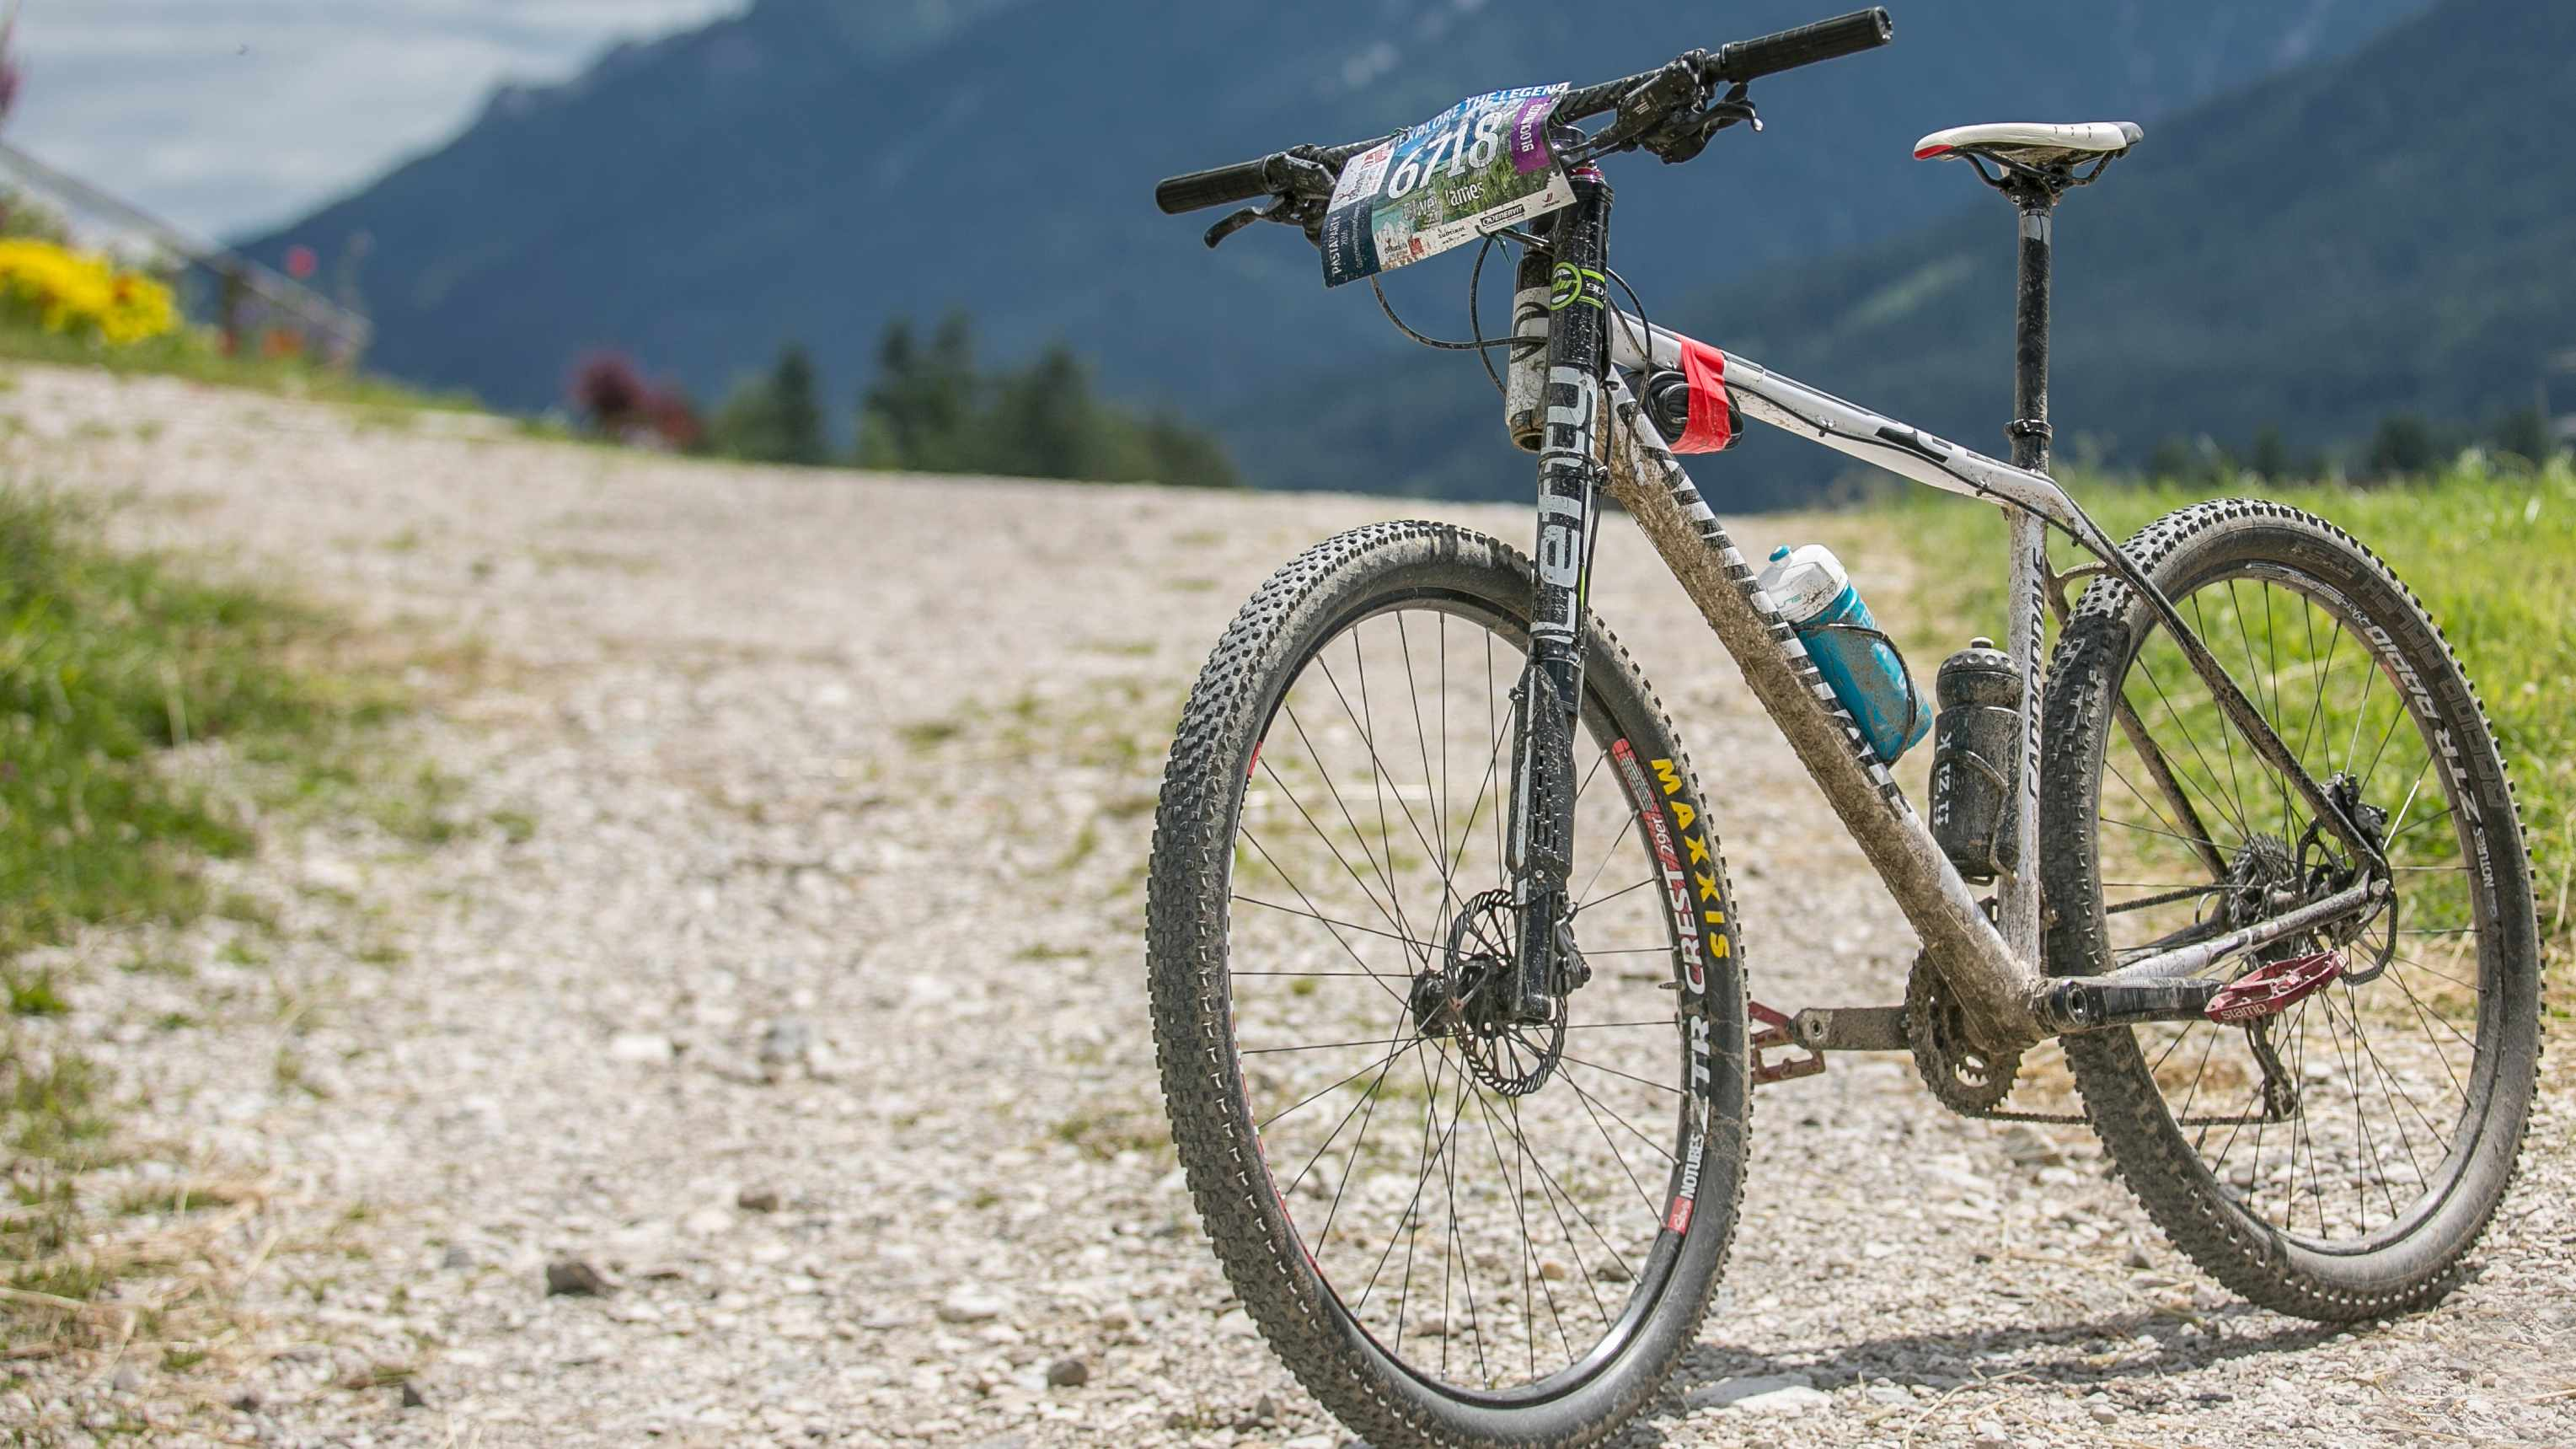 The Cannondale Flash 29: not new and in rather mismatched spec, but damn effective